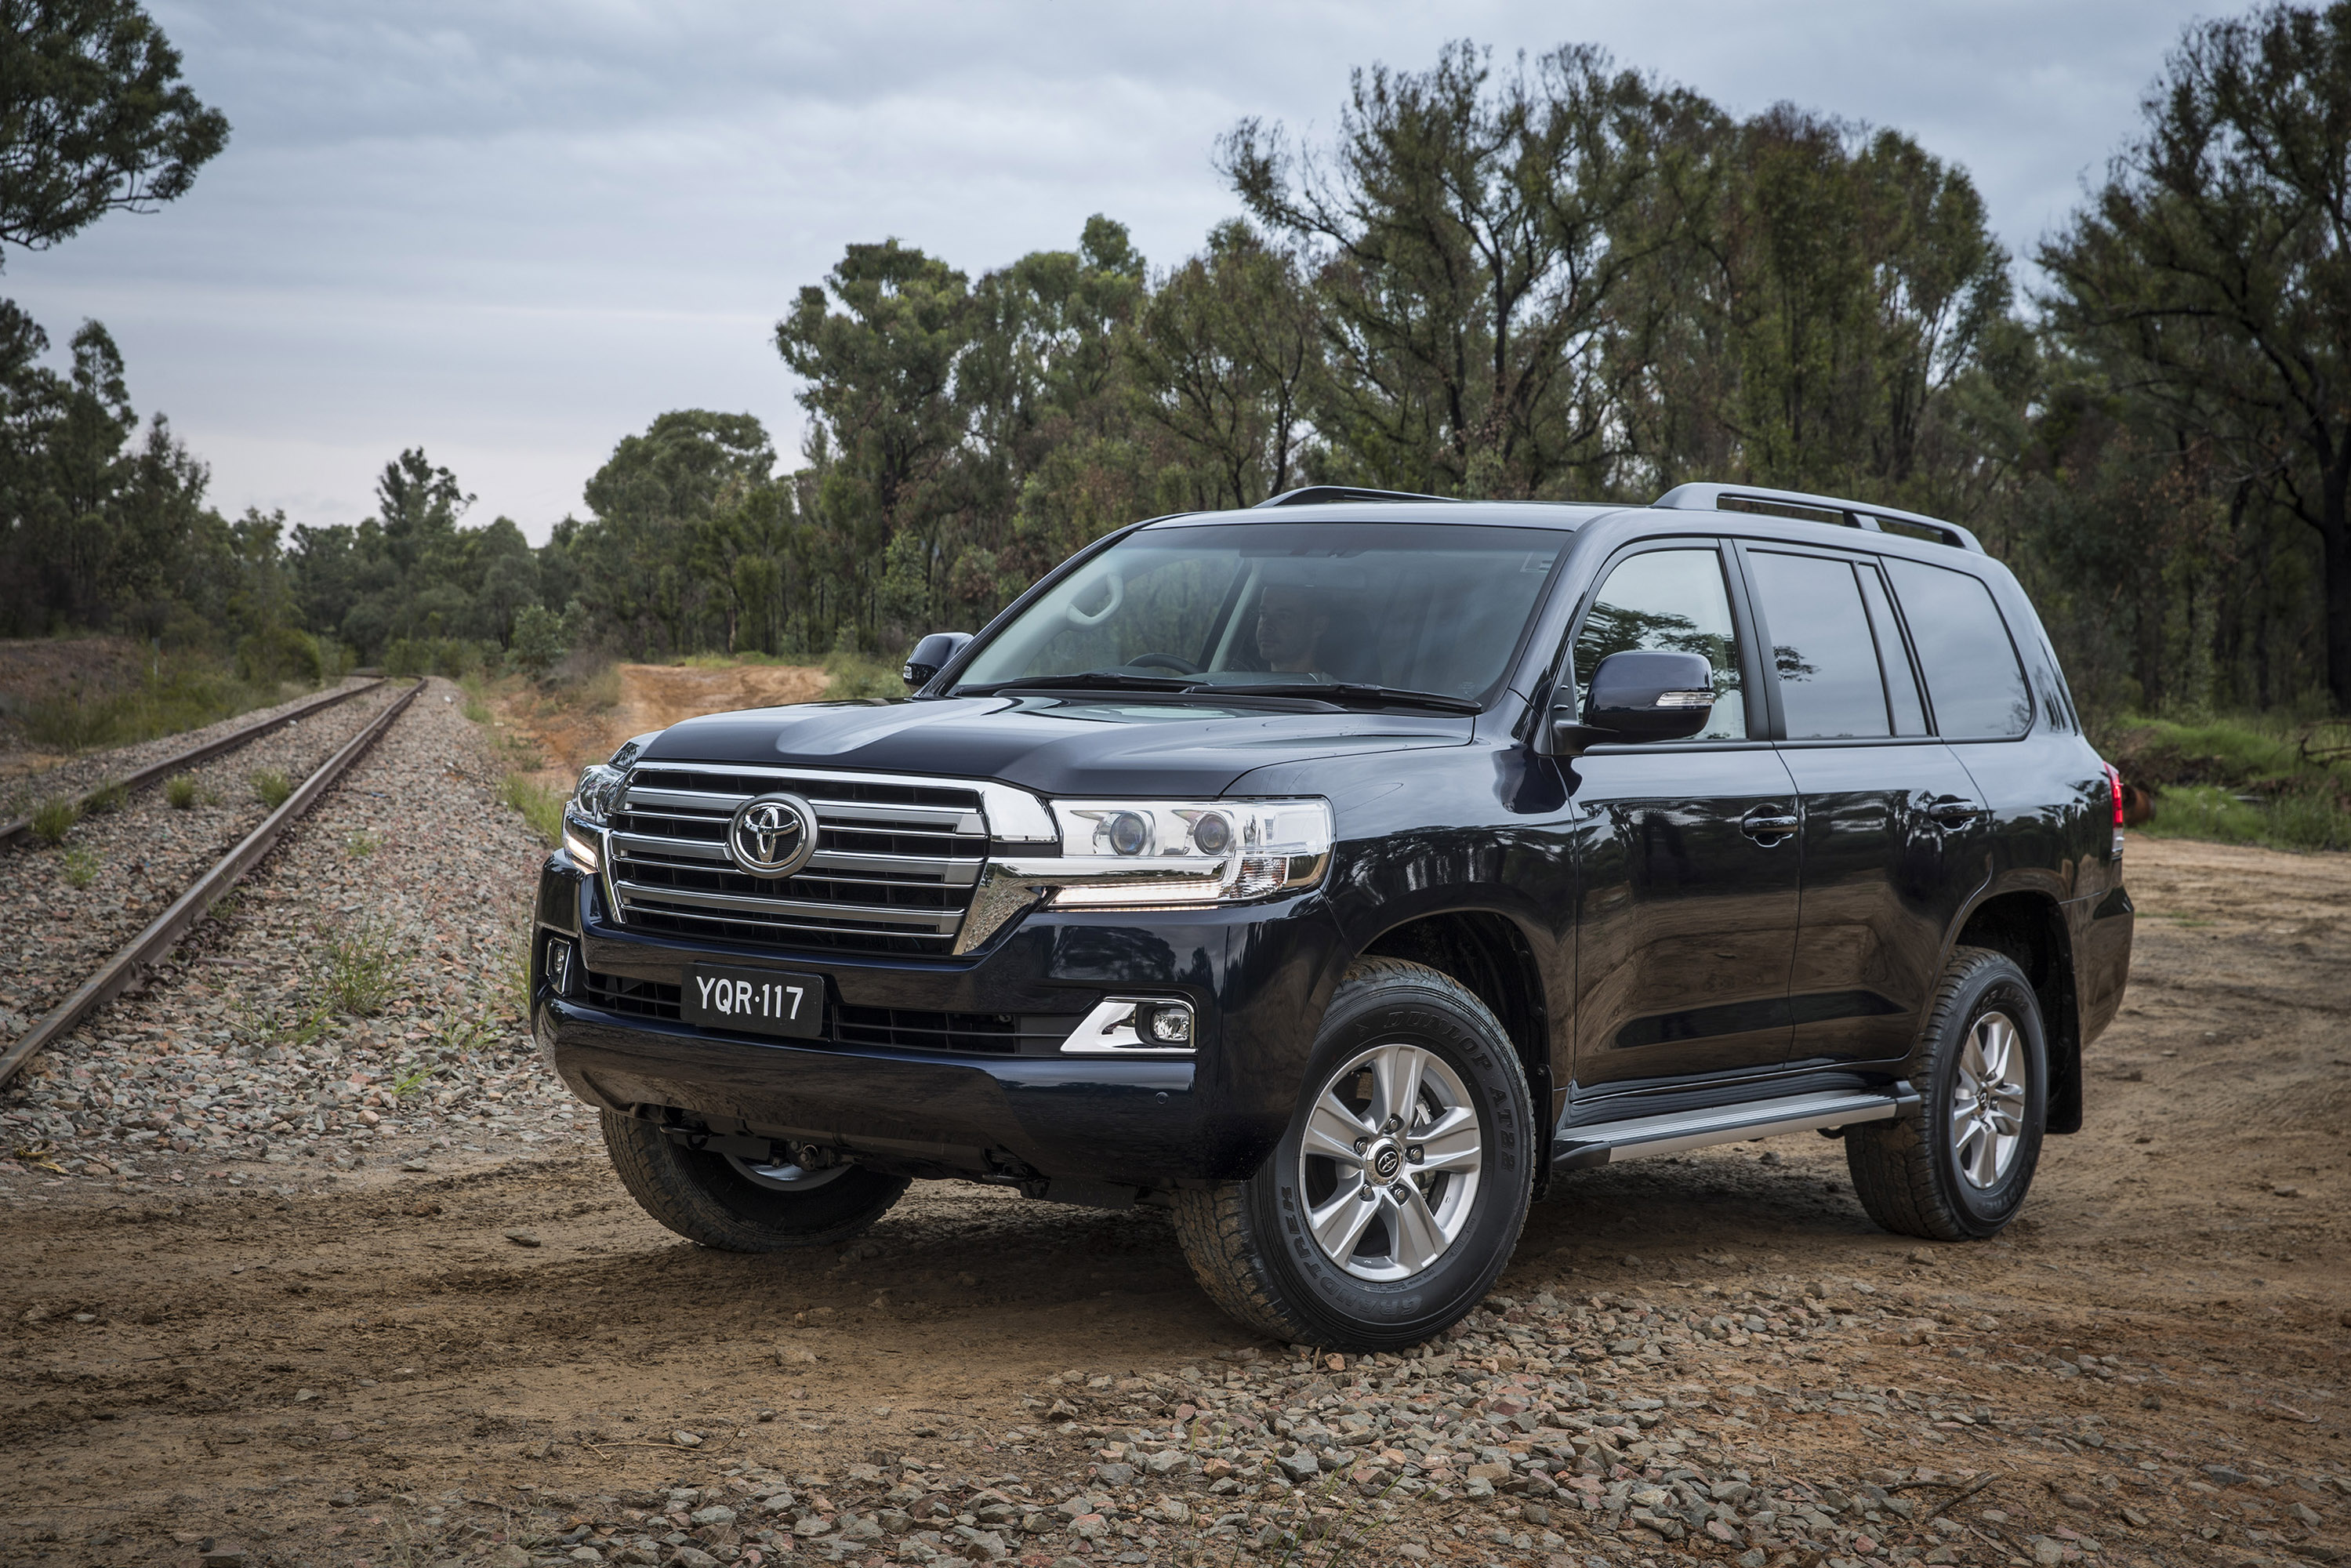 toyota reveals limited run of land cruiser altitude model. Black Bedroom Furniture Sets. Home Design Ideas